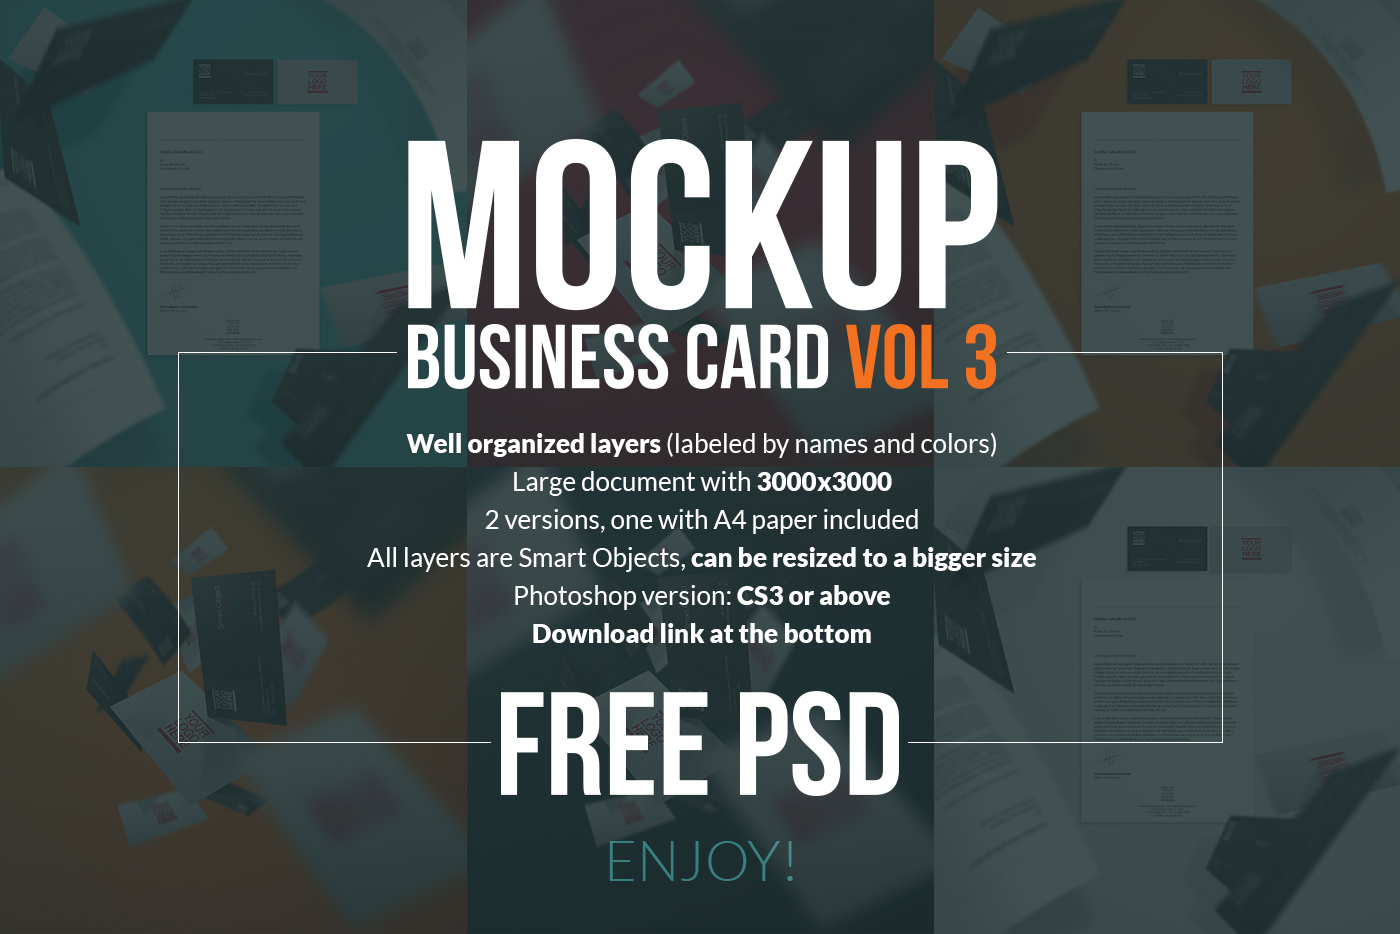 Free psd business card mockup volume 3 on behance help reheart Choice Image